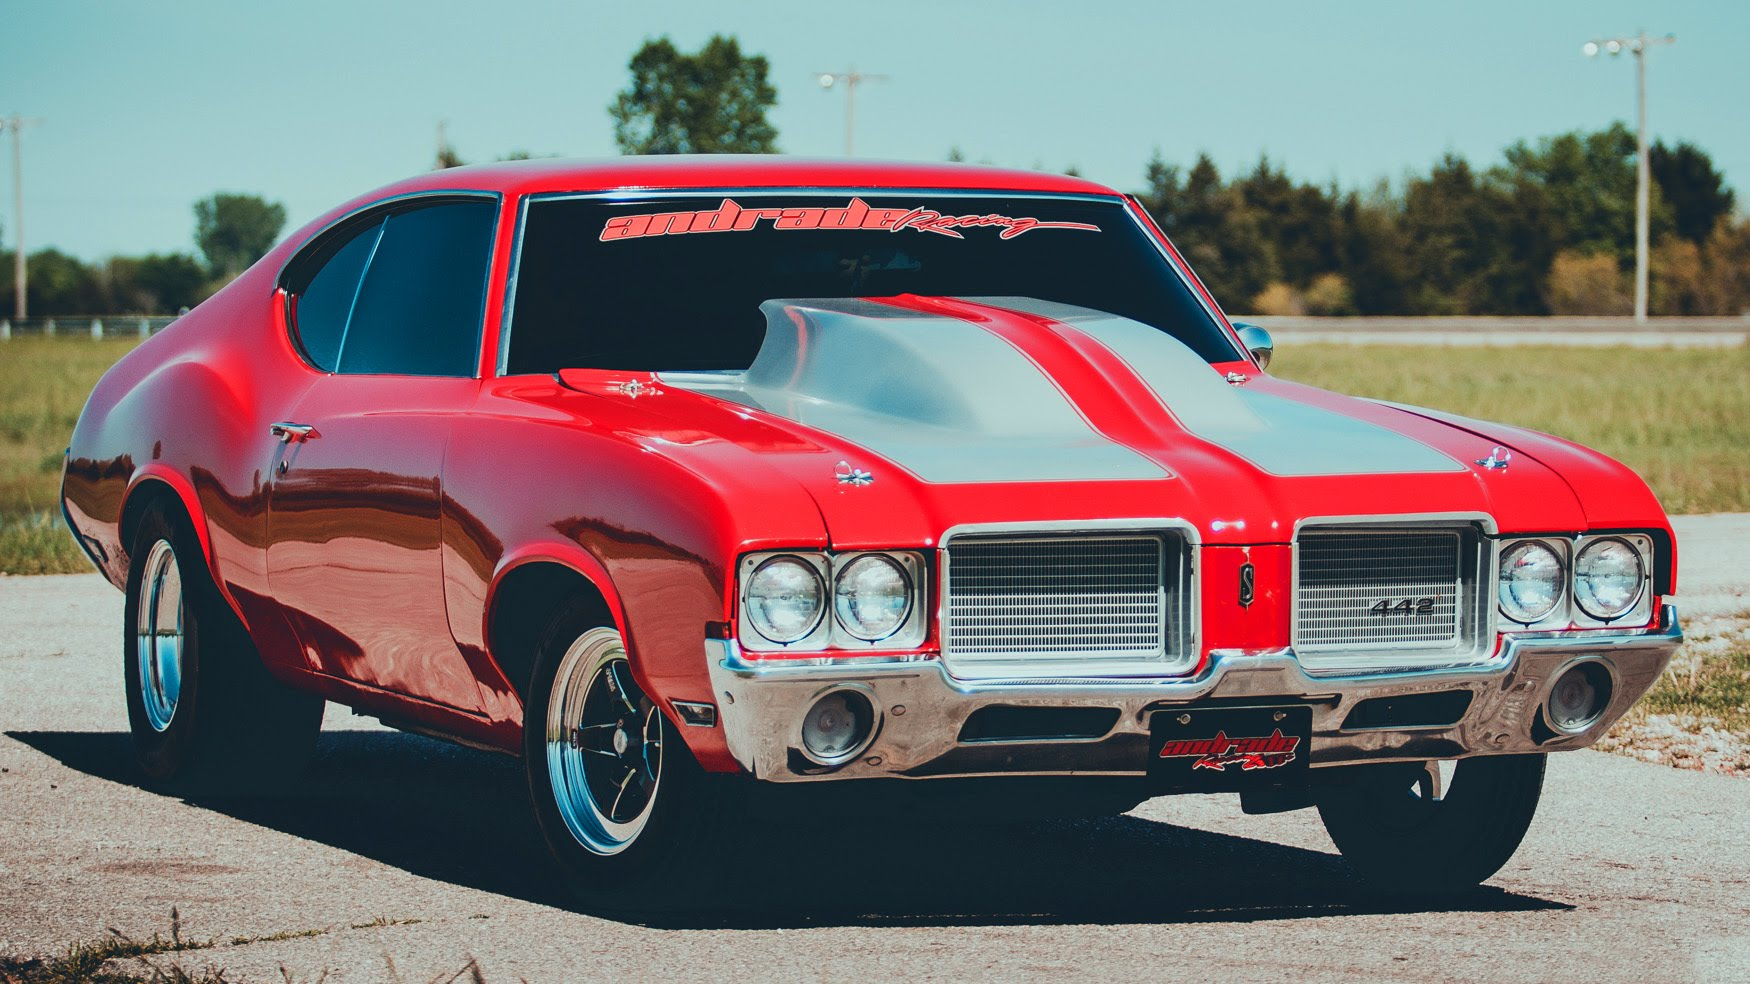 Classic Olds Cutlass with 350-Nitrous Shot | DragTimes.com ...